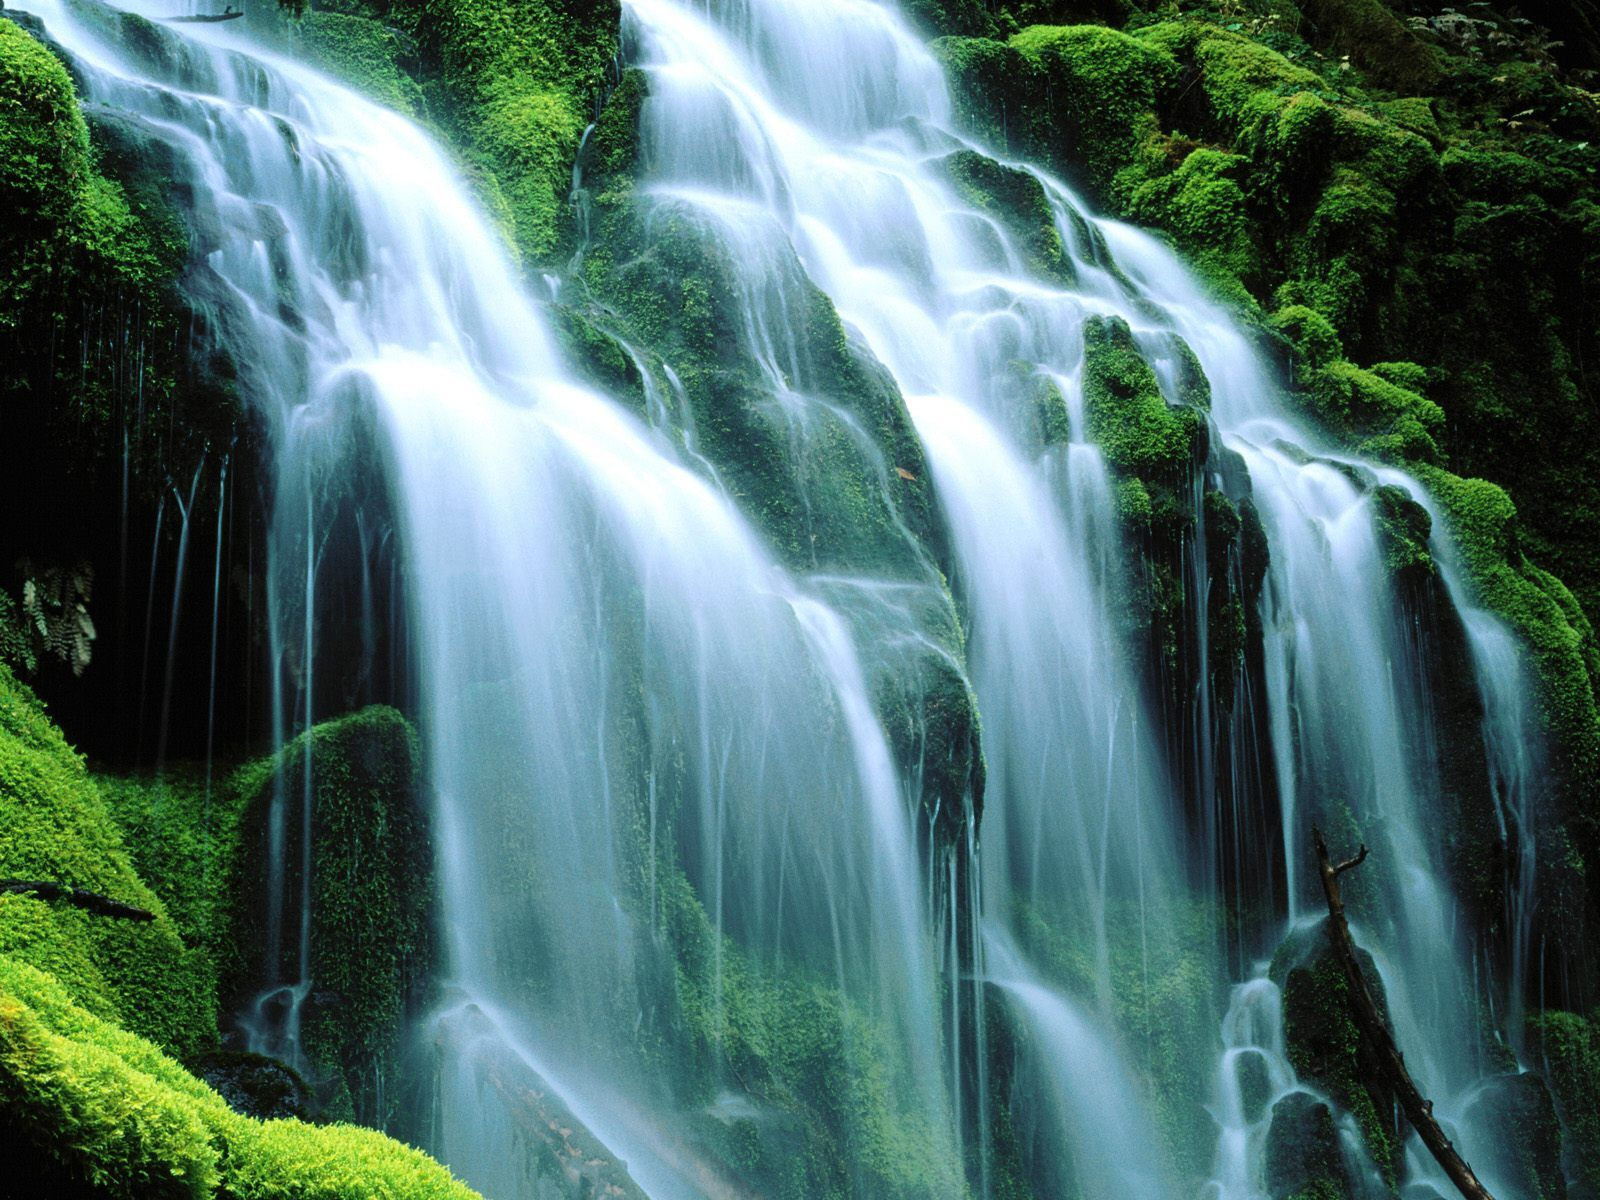 waterfall | hd widescreen wallpapers: new desktop waterfall